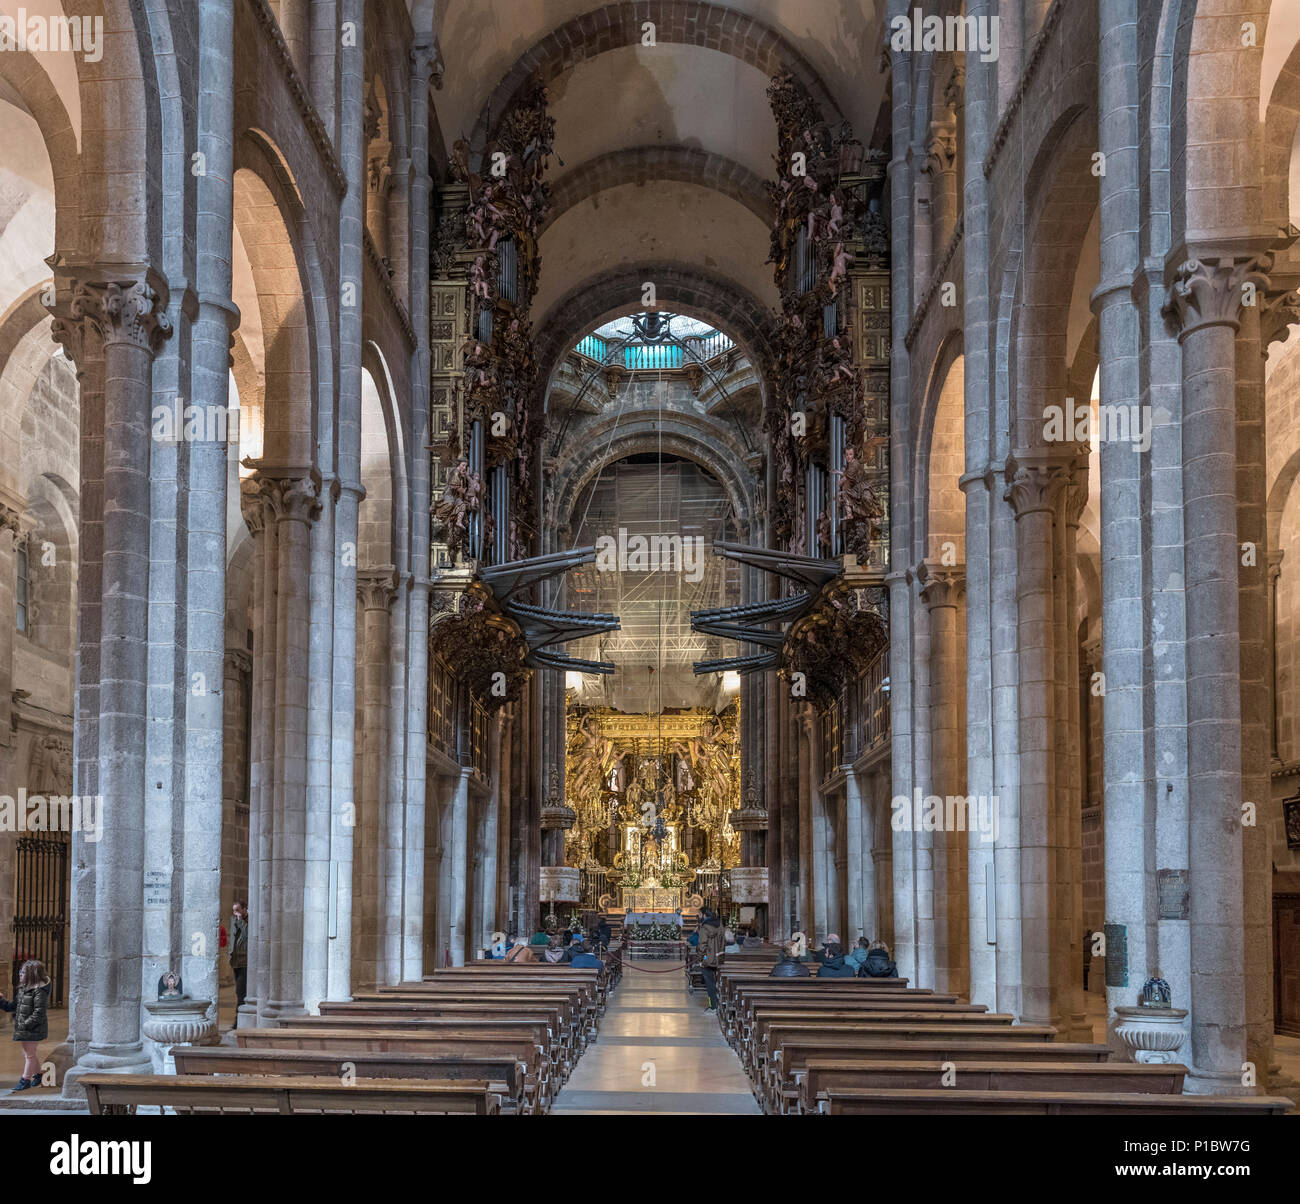 Santiago Cathedral. Interior of the Cathedral of Santiago de Compostela, Santiago de Compostela, Galicia, Spain - Stock Image